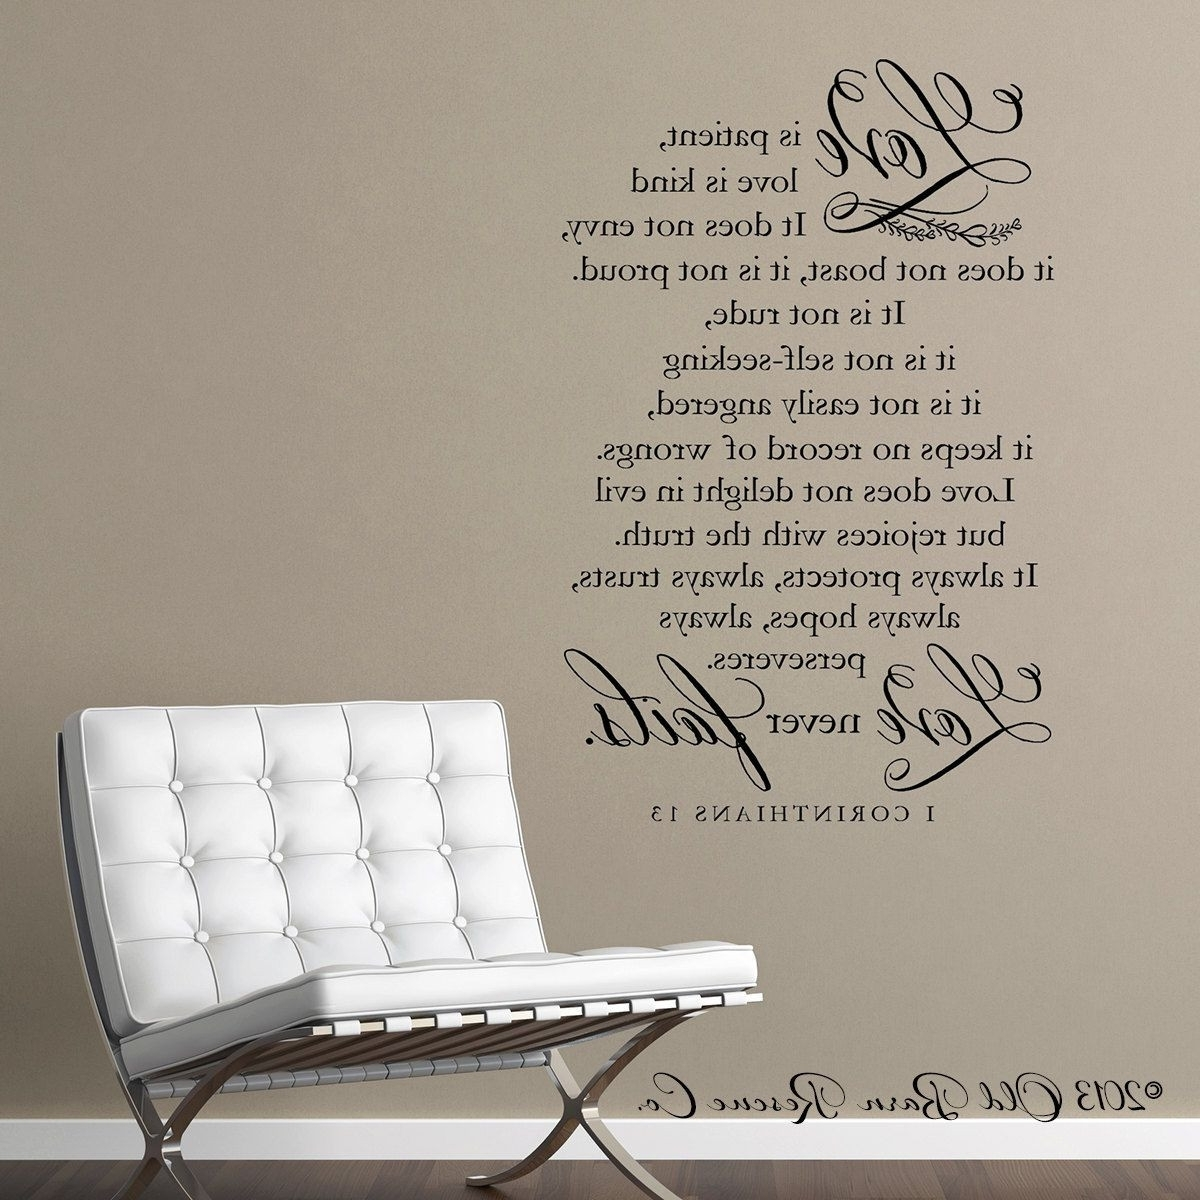 Appealing Wall Art Decor Ideas Sofa Corinthians Chair White Pict Of Pertaining To Current Love Is Patient Wall Art (View 11 of 20)